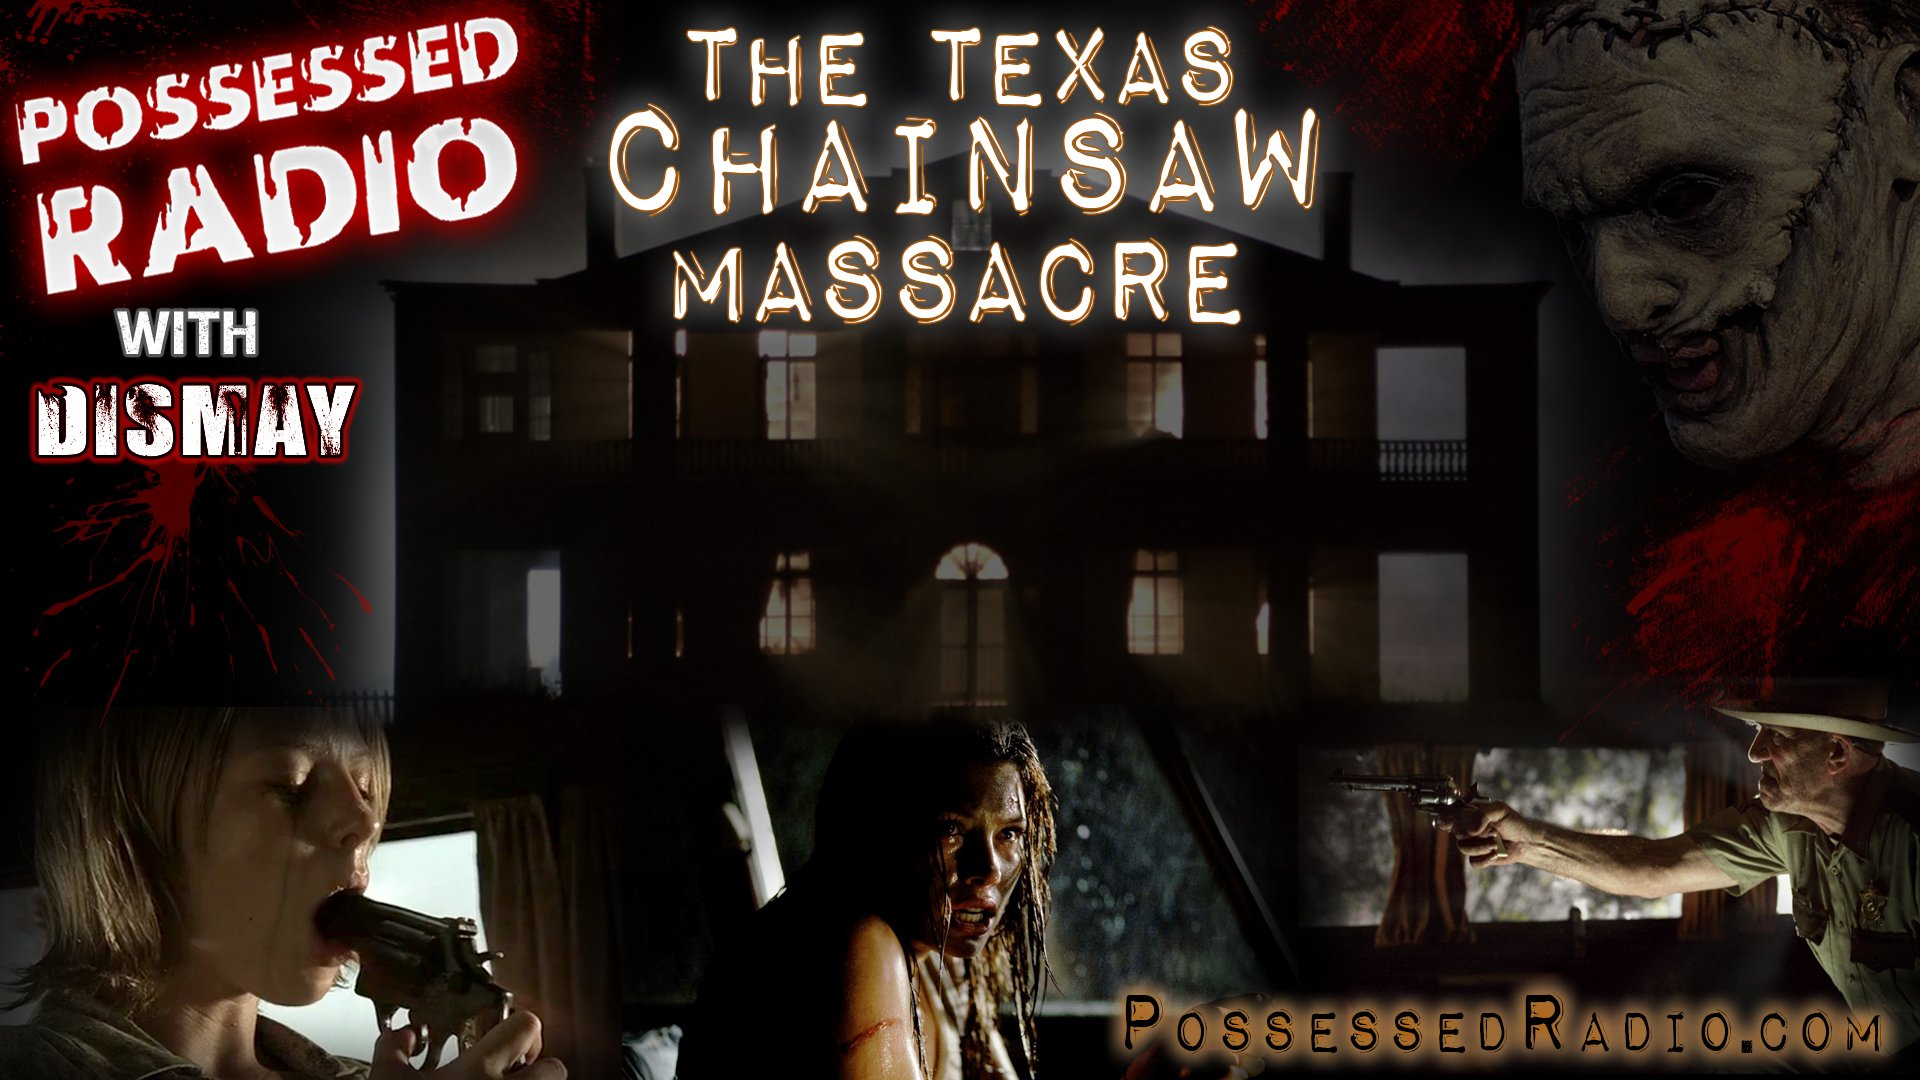 The Texas Chainsaw Massacre 2003 with Dismay!